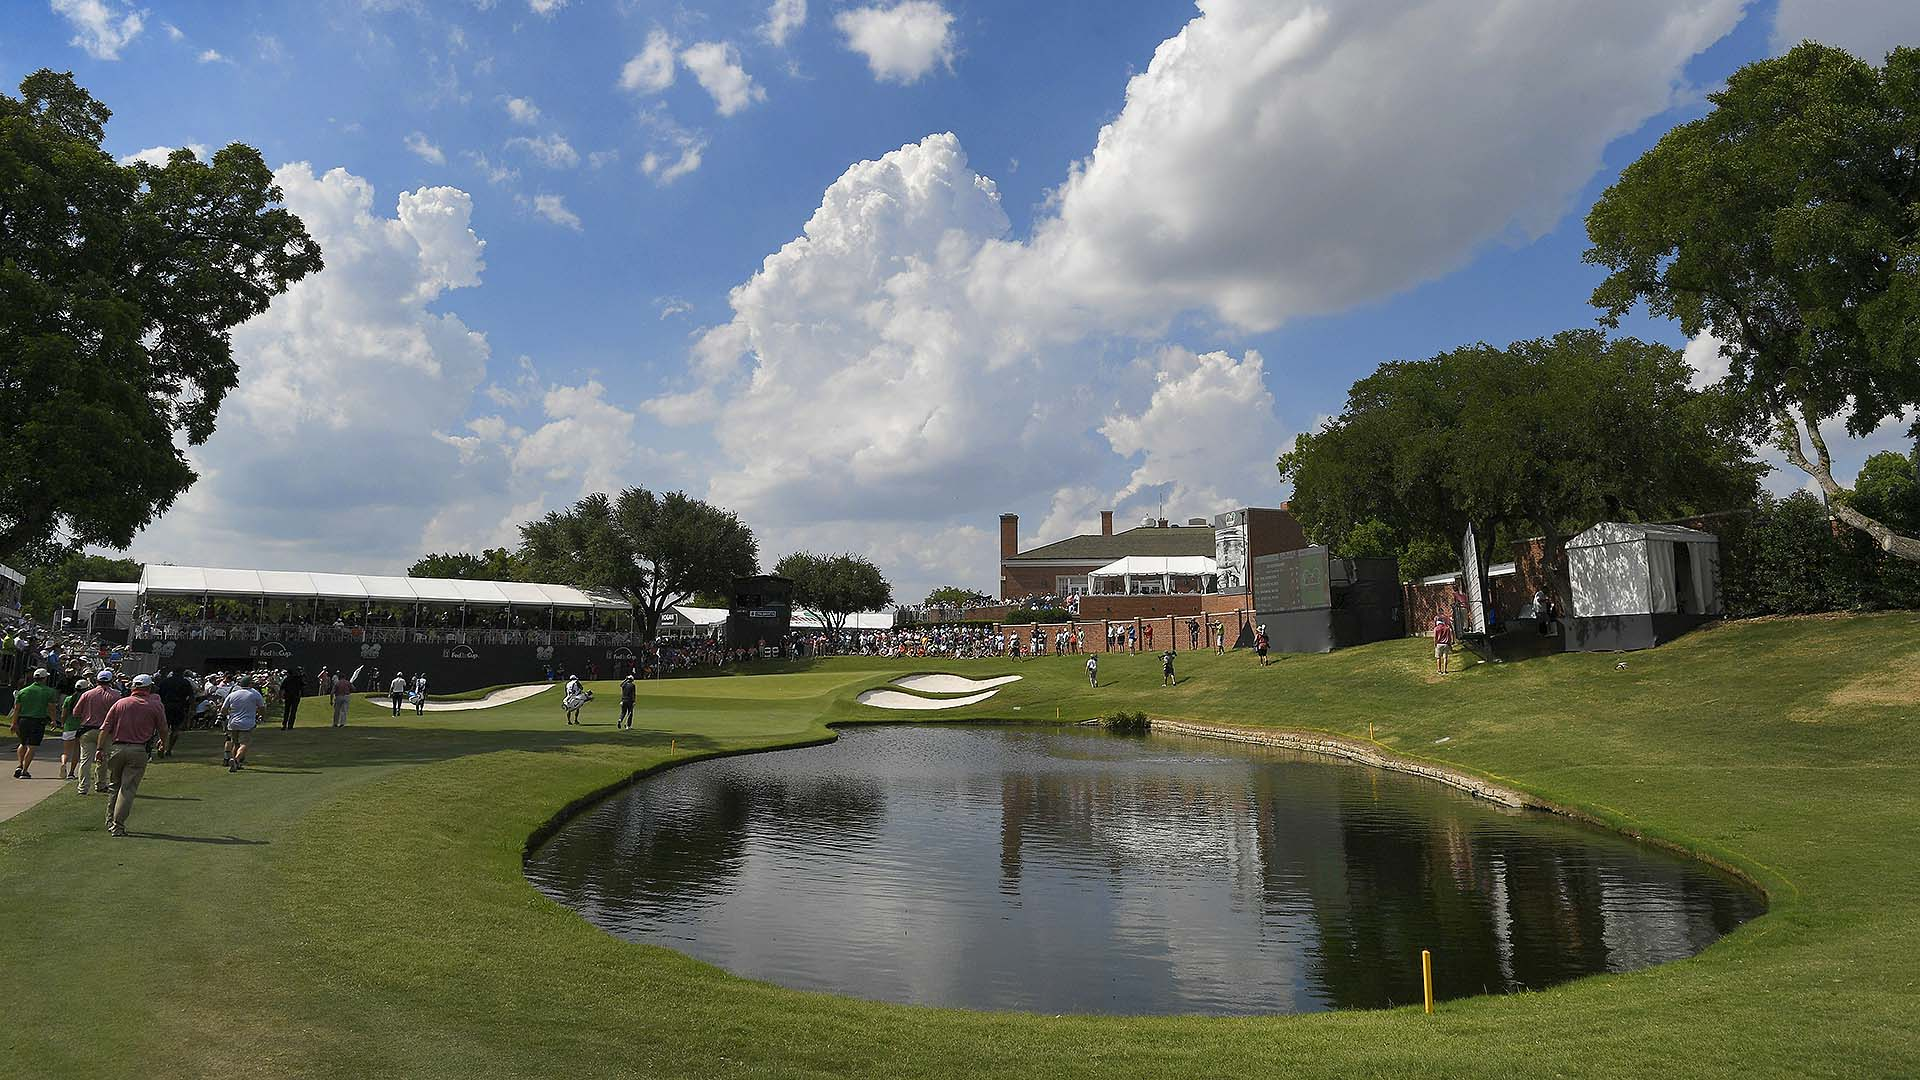 Show goes on at Colonial Country Club with Charles Schwab as sponsor - Golf Channel